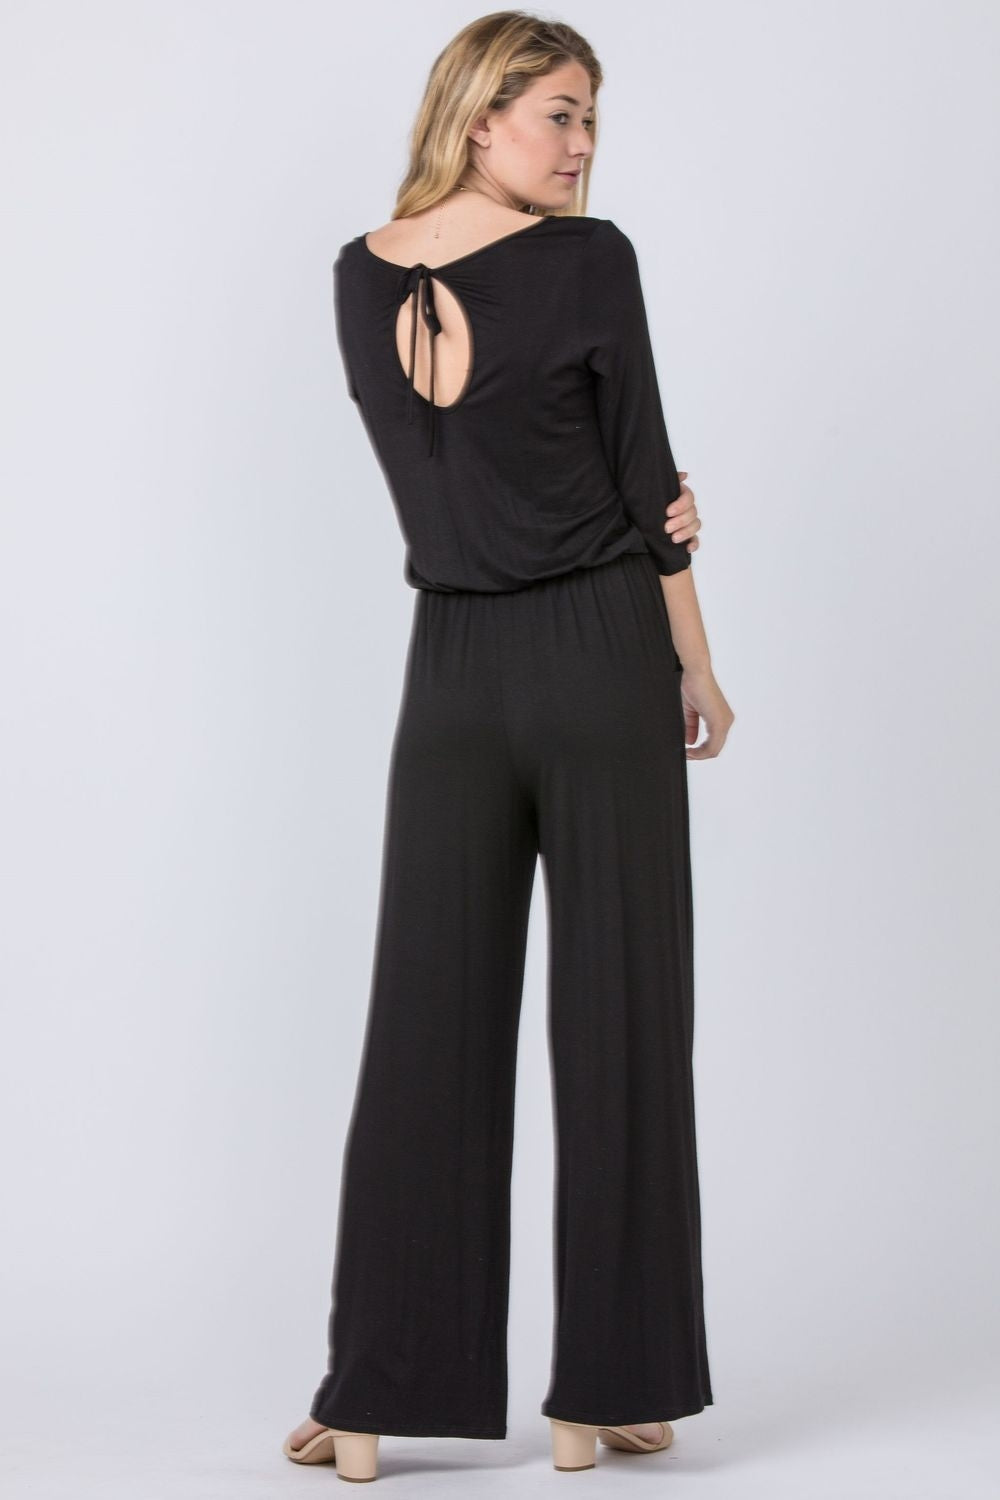 Black 3/4 Sleeve Drawstring Jumpsuit